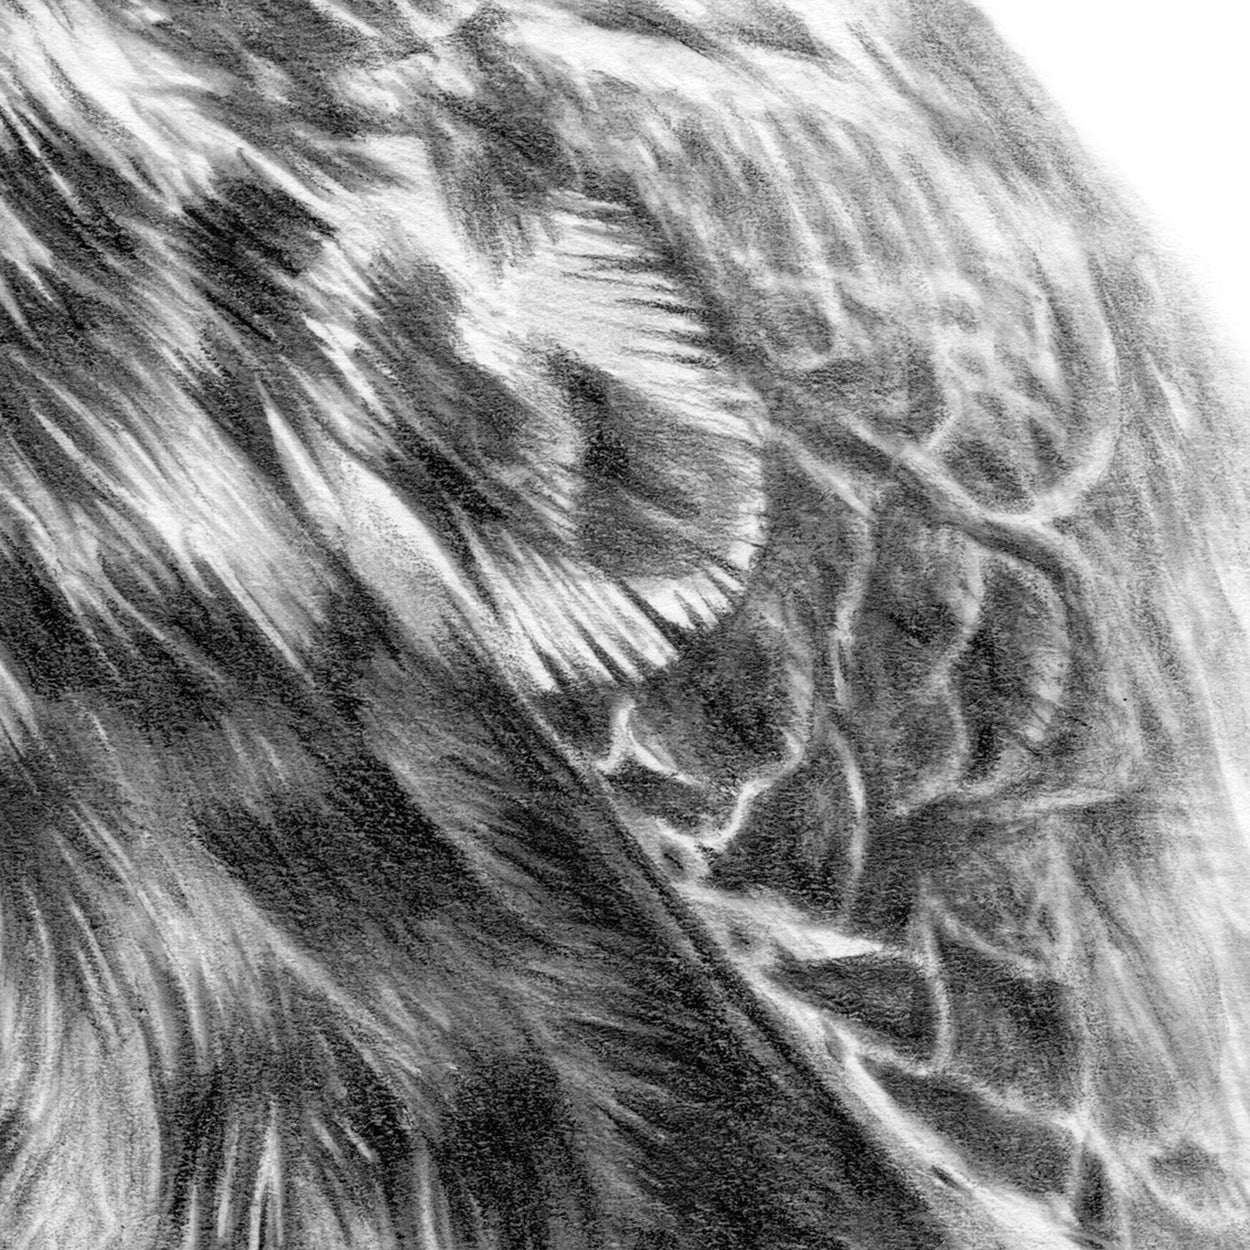 Hobby Feathers Drawing Close-up - The Thriving Wild